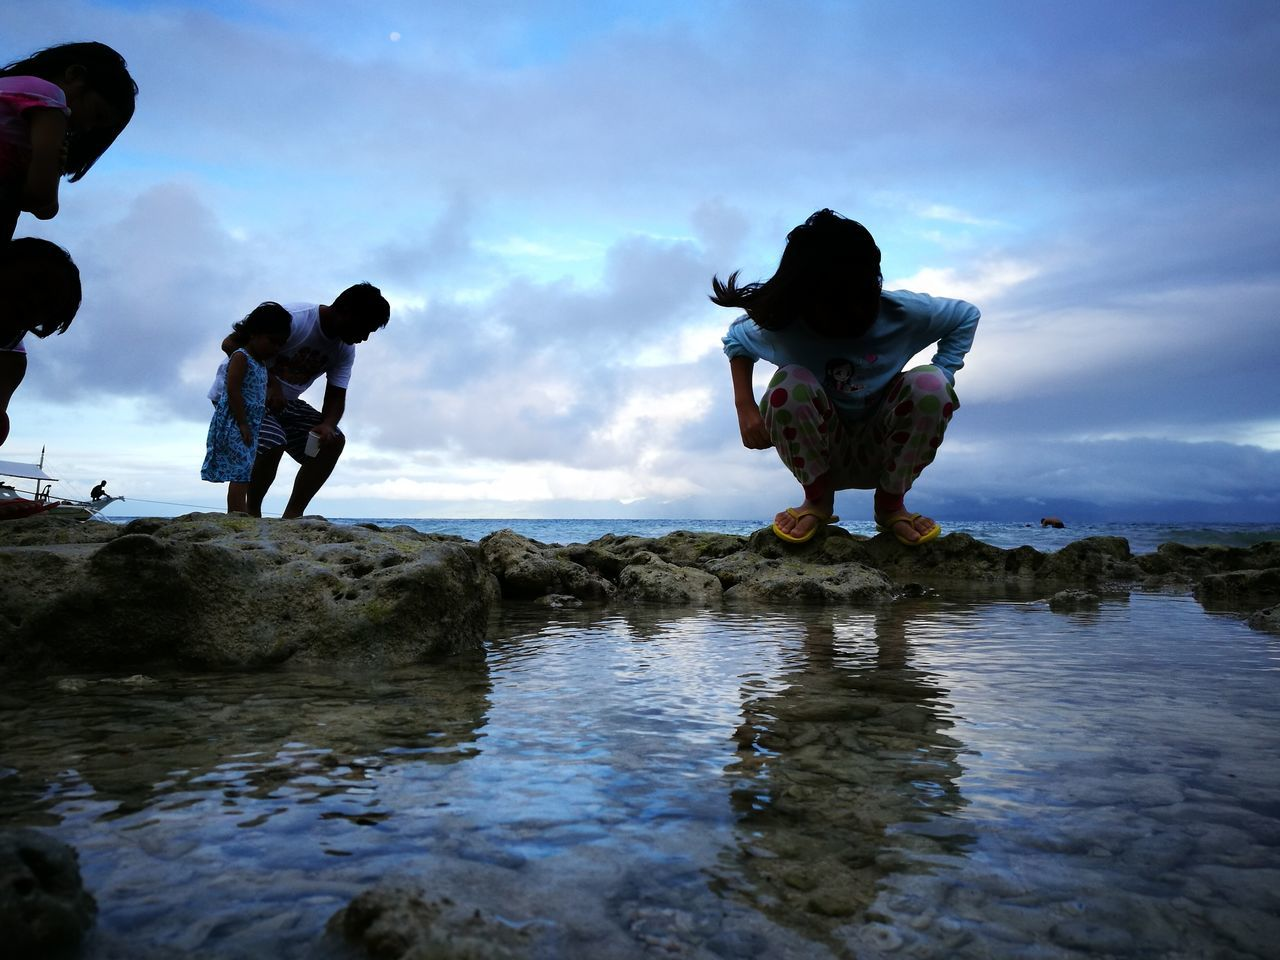 real people, childhood, water, full length, boys, standing, sky, girls, men, leisure activity, rear view, outdoors, cloud - sky, togetherness, day, lifestyles, friendship, nature, beauty in nature, people